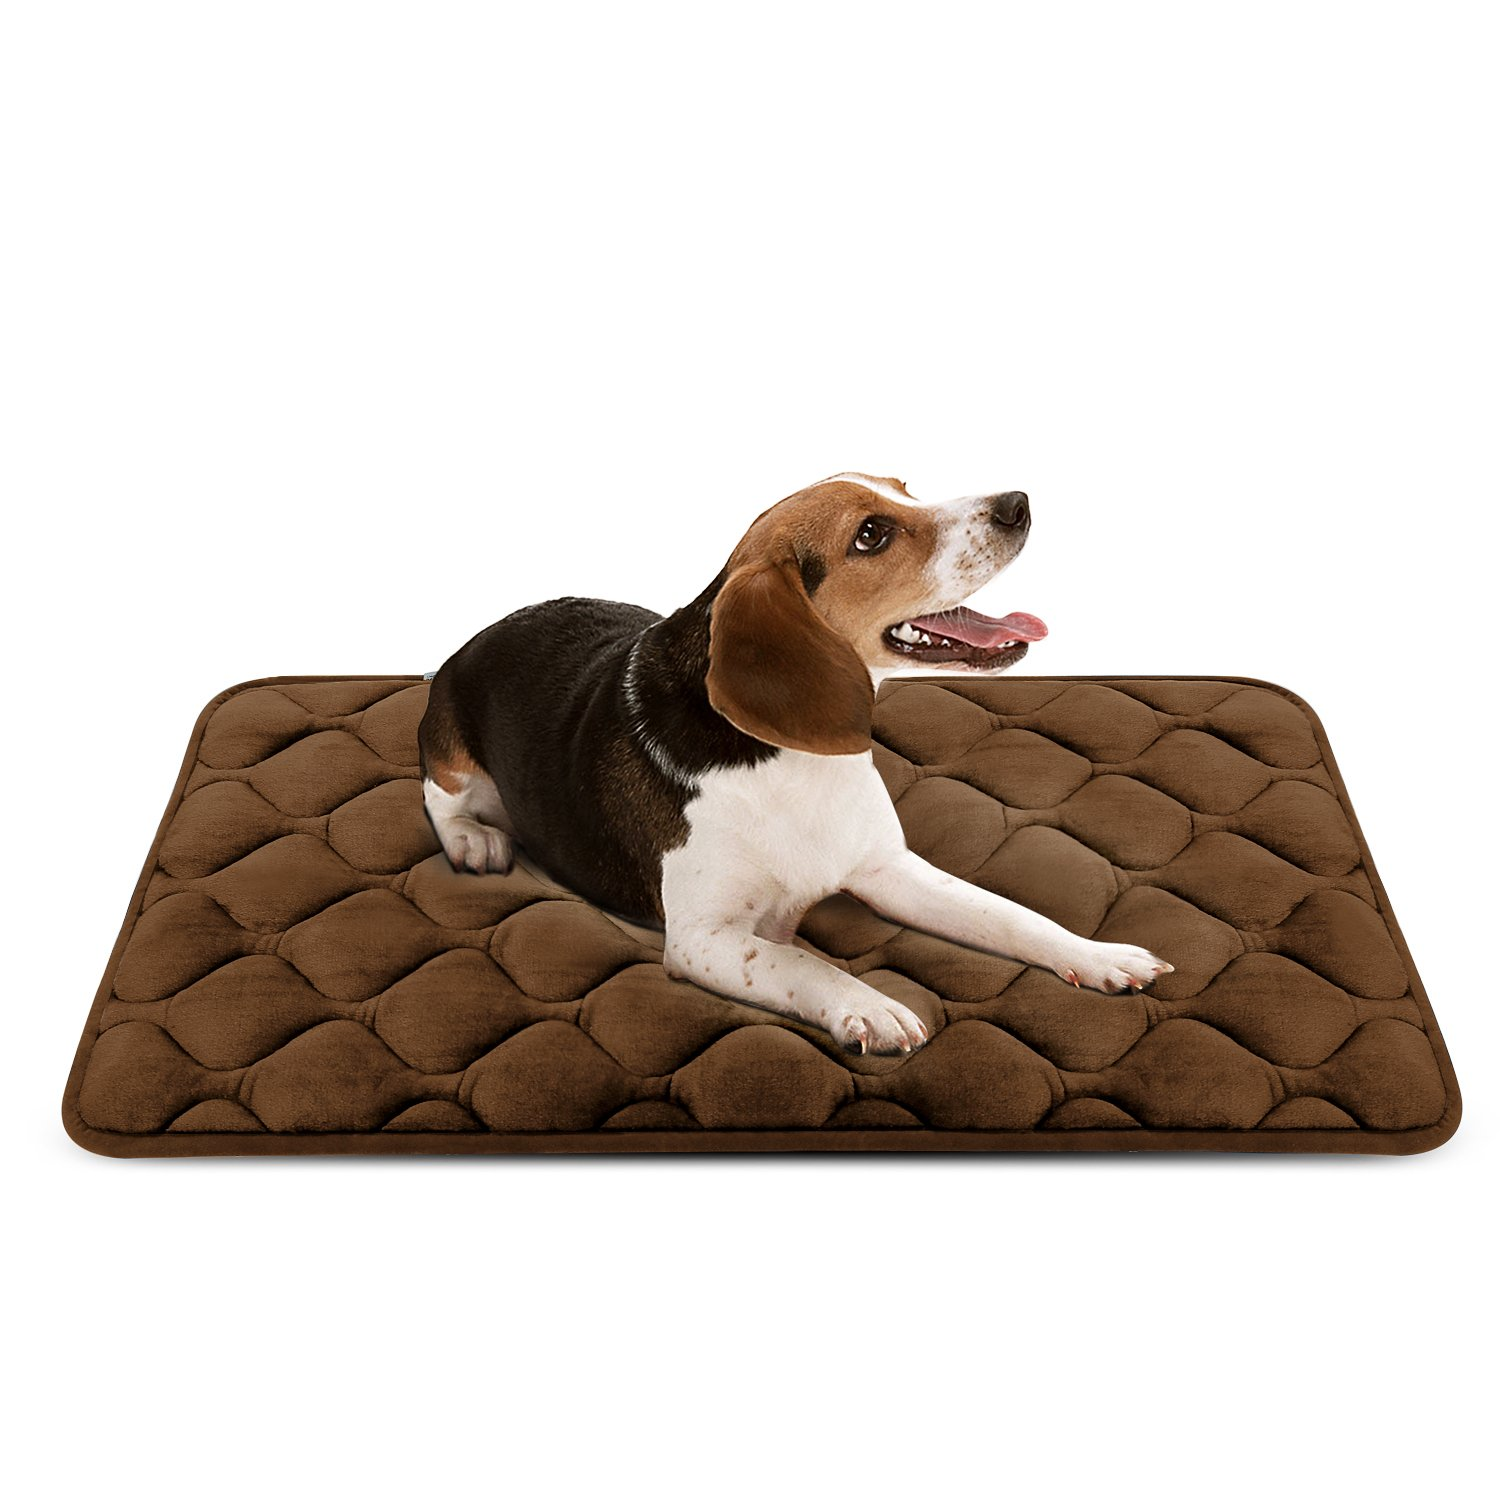 Dog Bed Mat Washable - Soft Fleece Crate Pad - Anti-Slip Matress Small Medium Large Pets (Coffee M) HeroDog